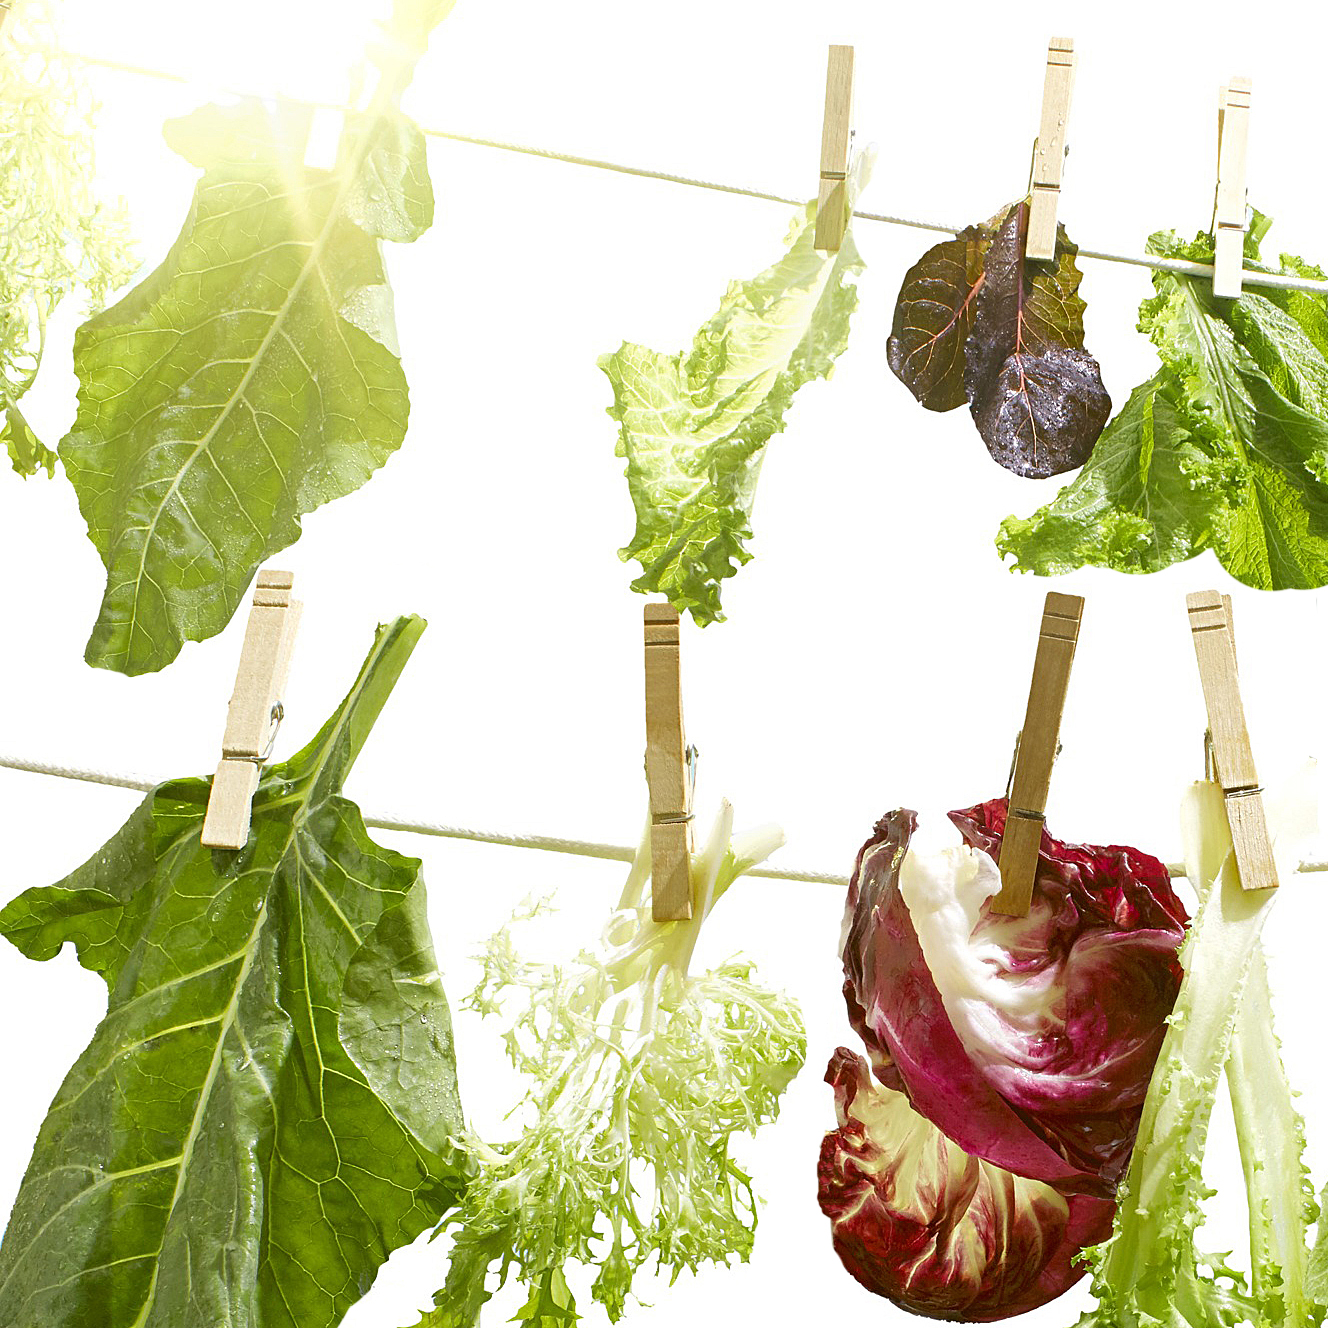 greens on clothesline drying